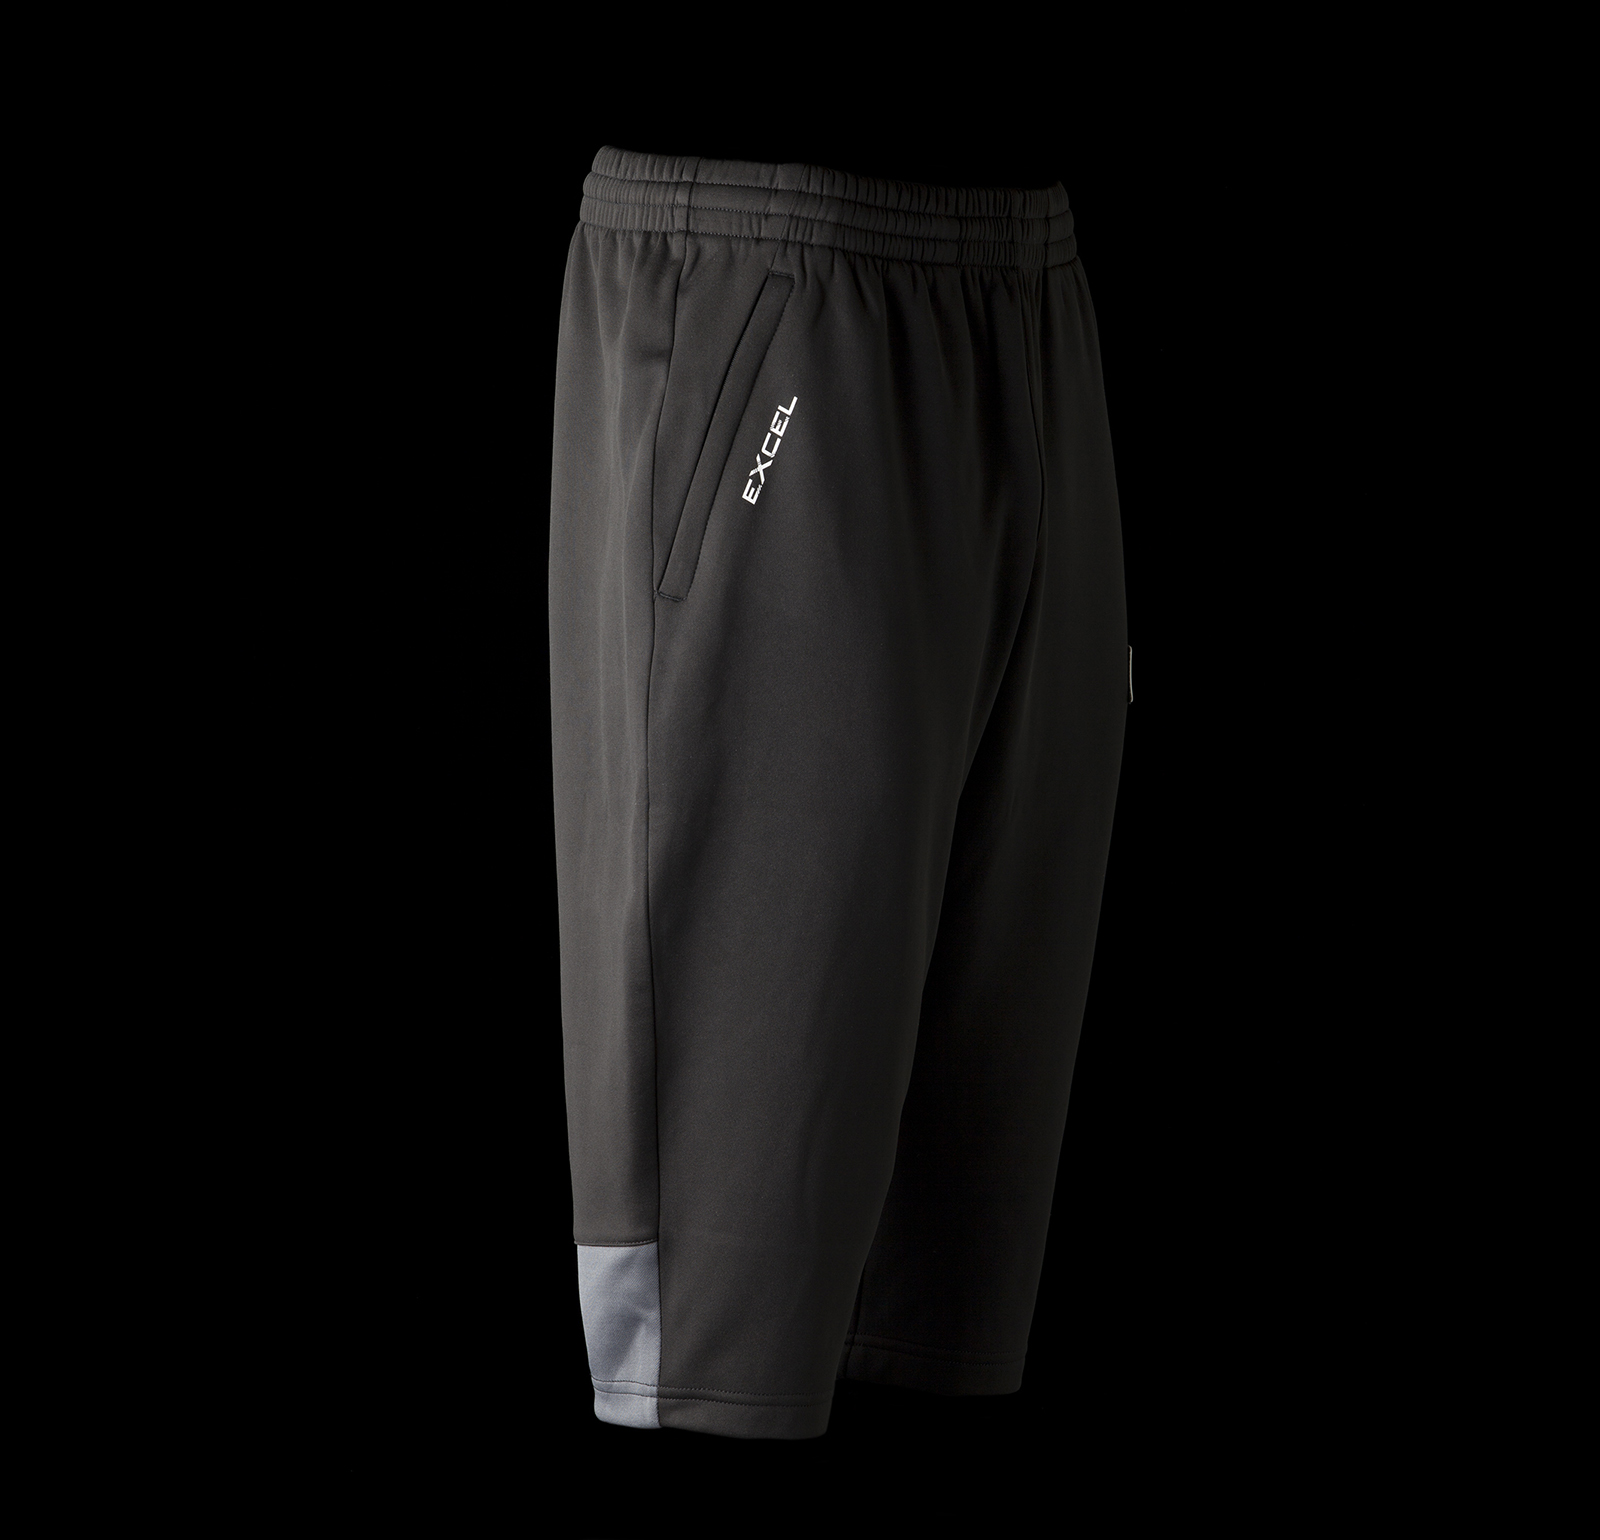 excel-3-4-pant-promo-61